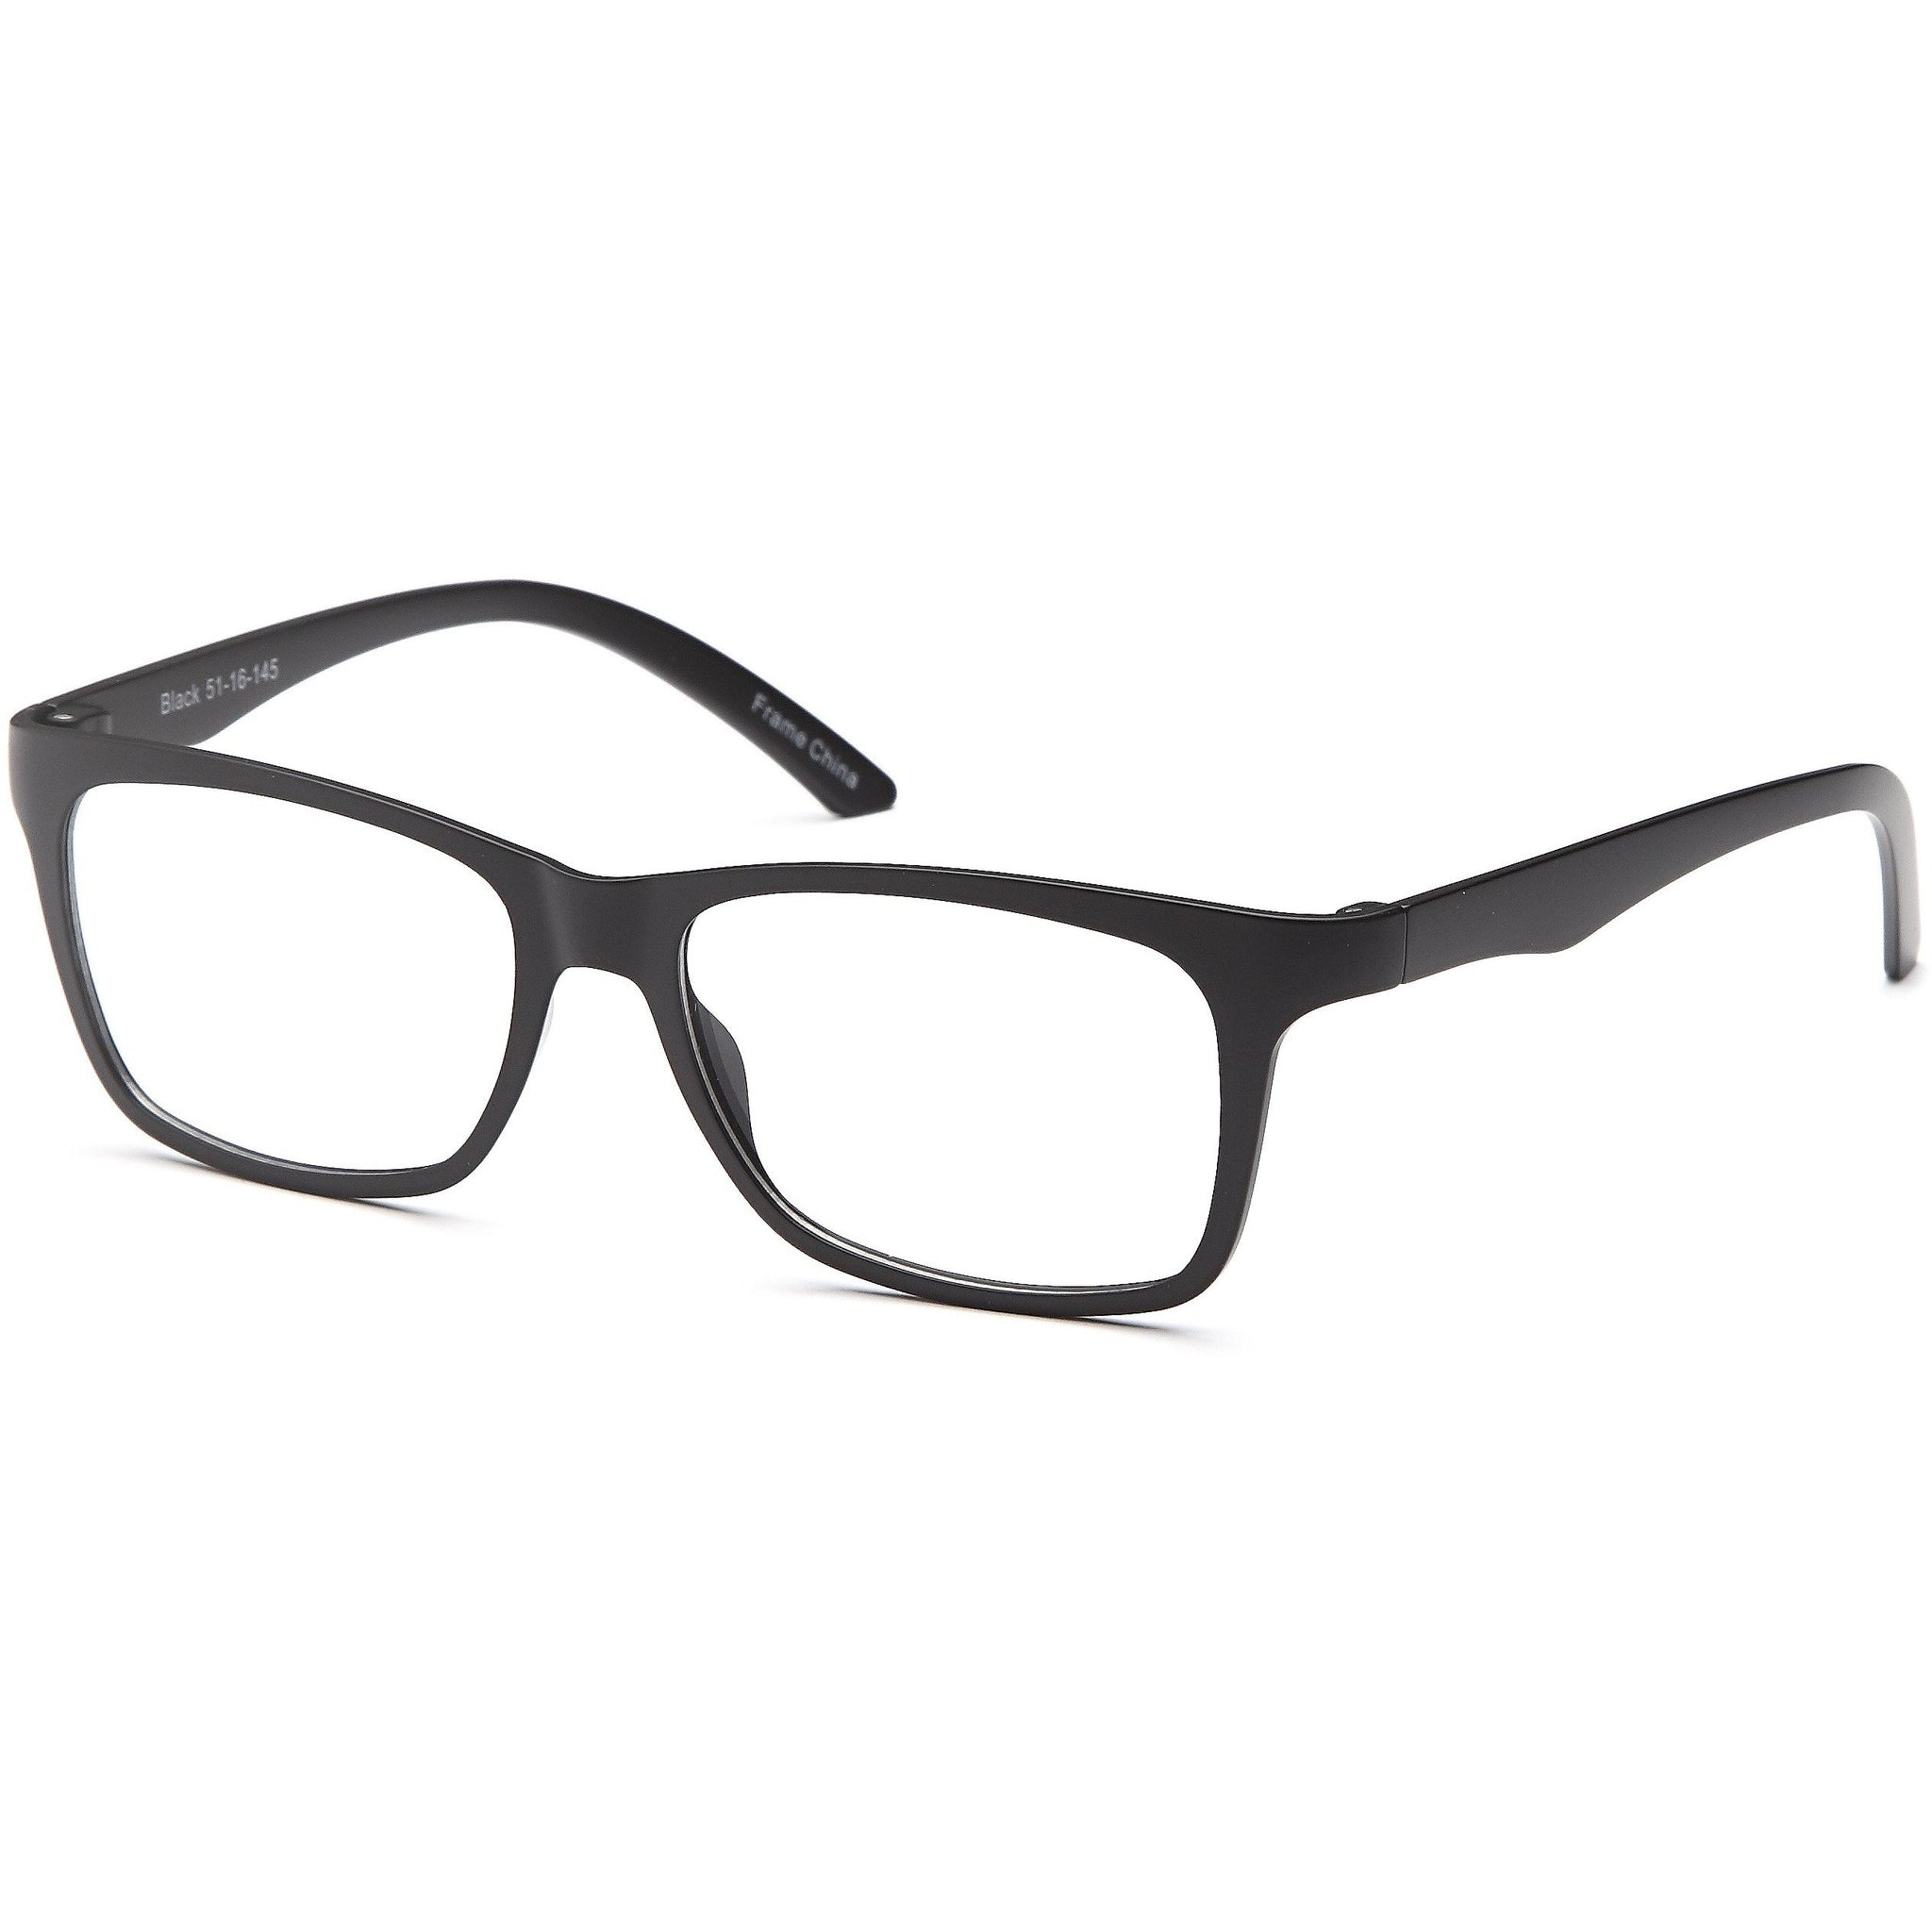 GEN Y Prescription Glasses SPLIT C Eyeglasses Frame